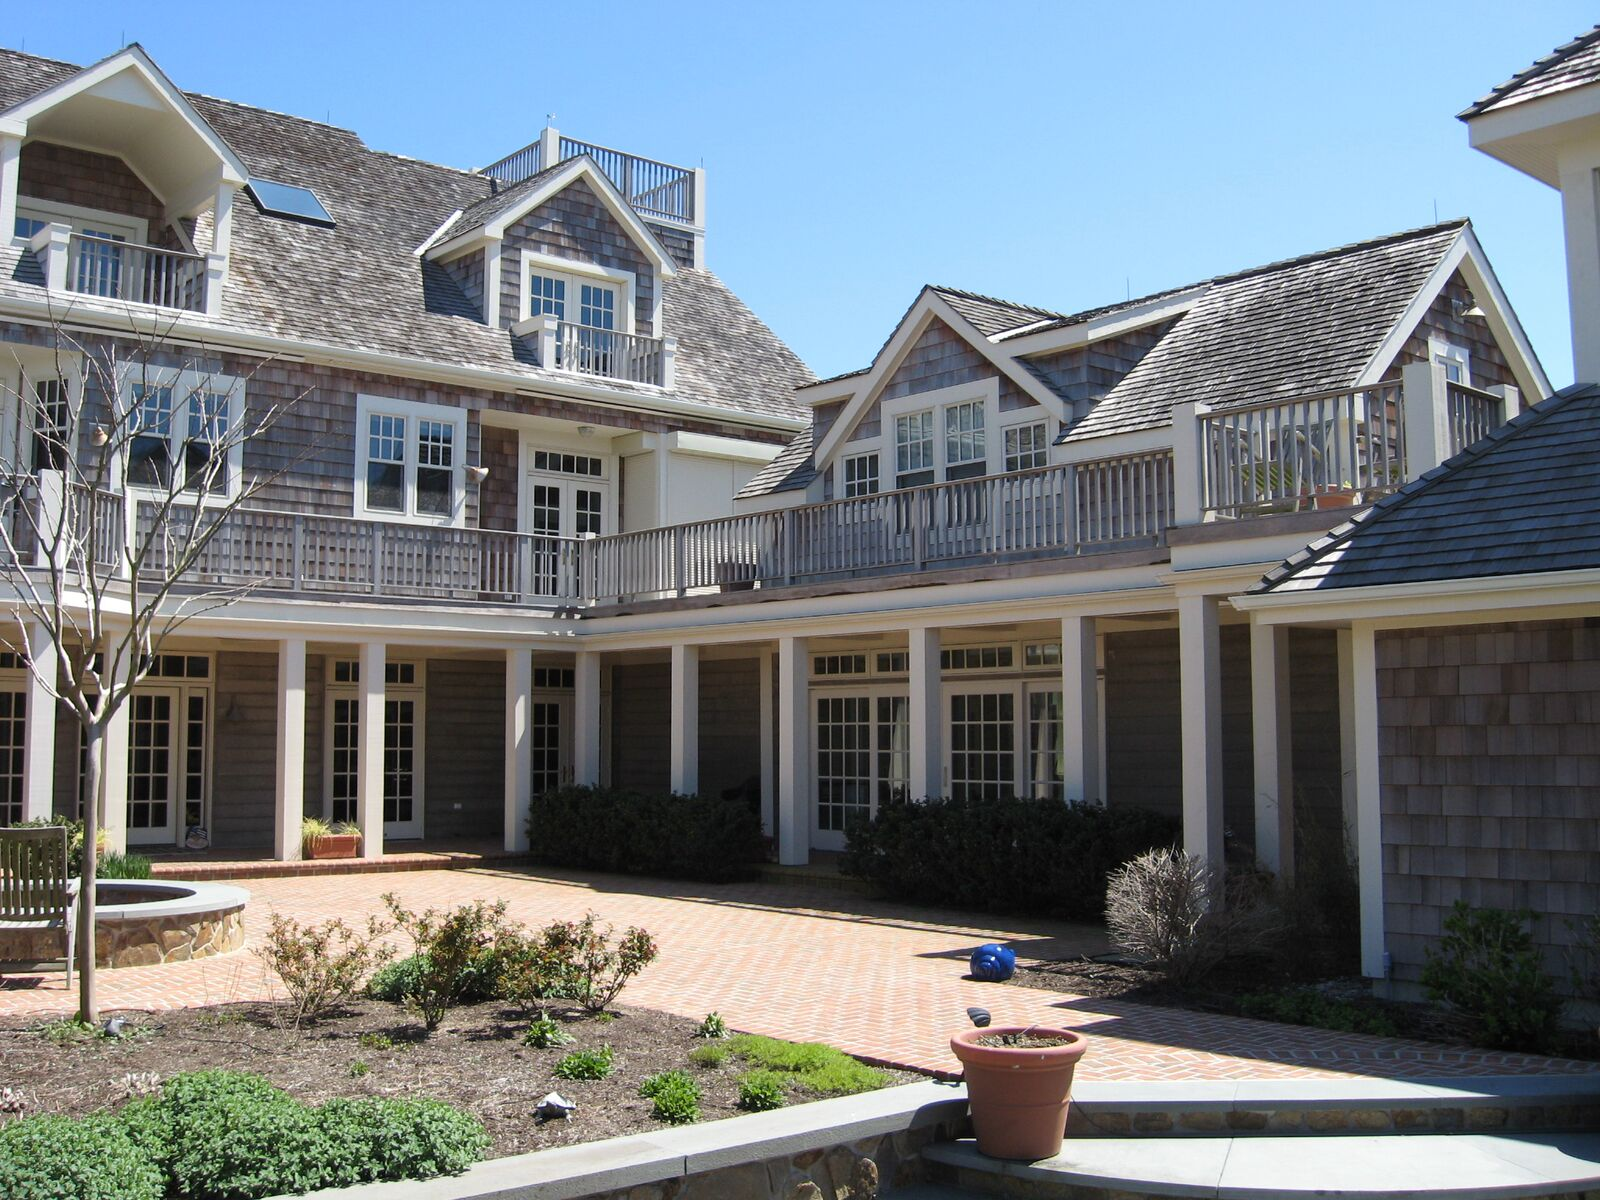 Shingle style ocean front beach house with cedar shingle siding and roofing, Pella windows and doors, Ipe decking and rails; lakeside patio with fire pit, fishpond, and garden walk.